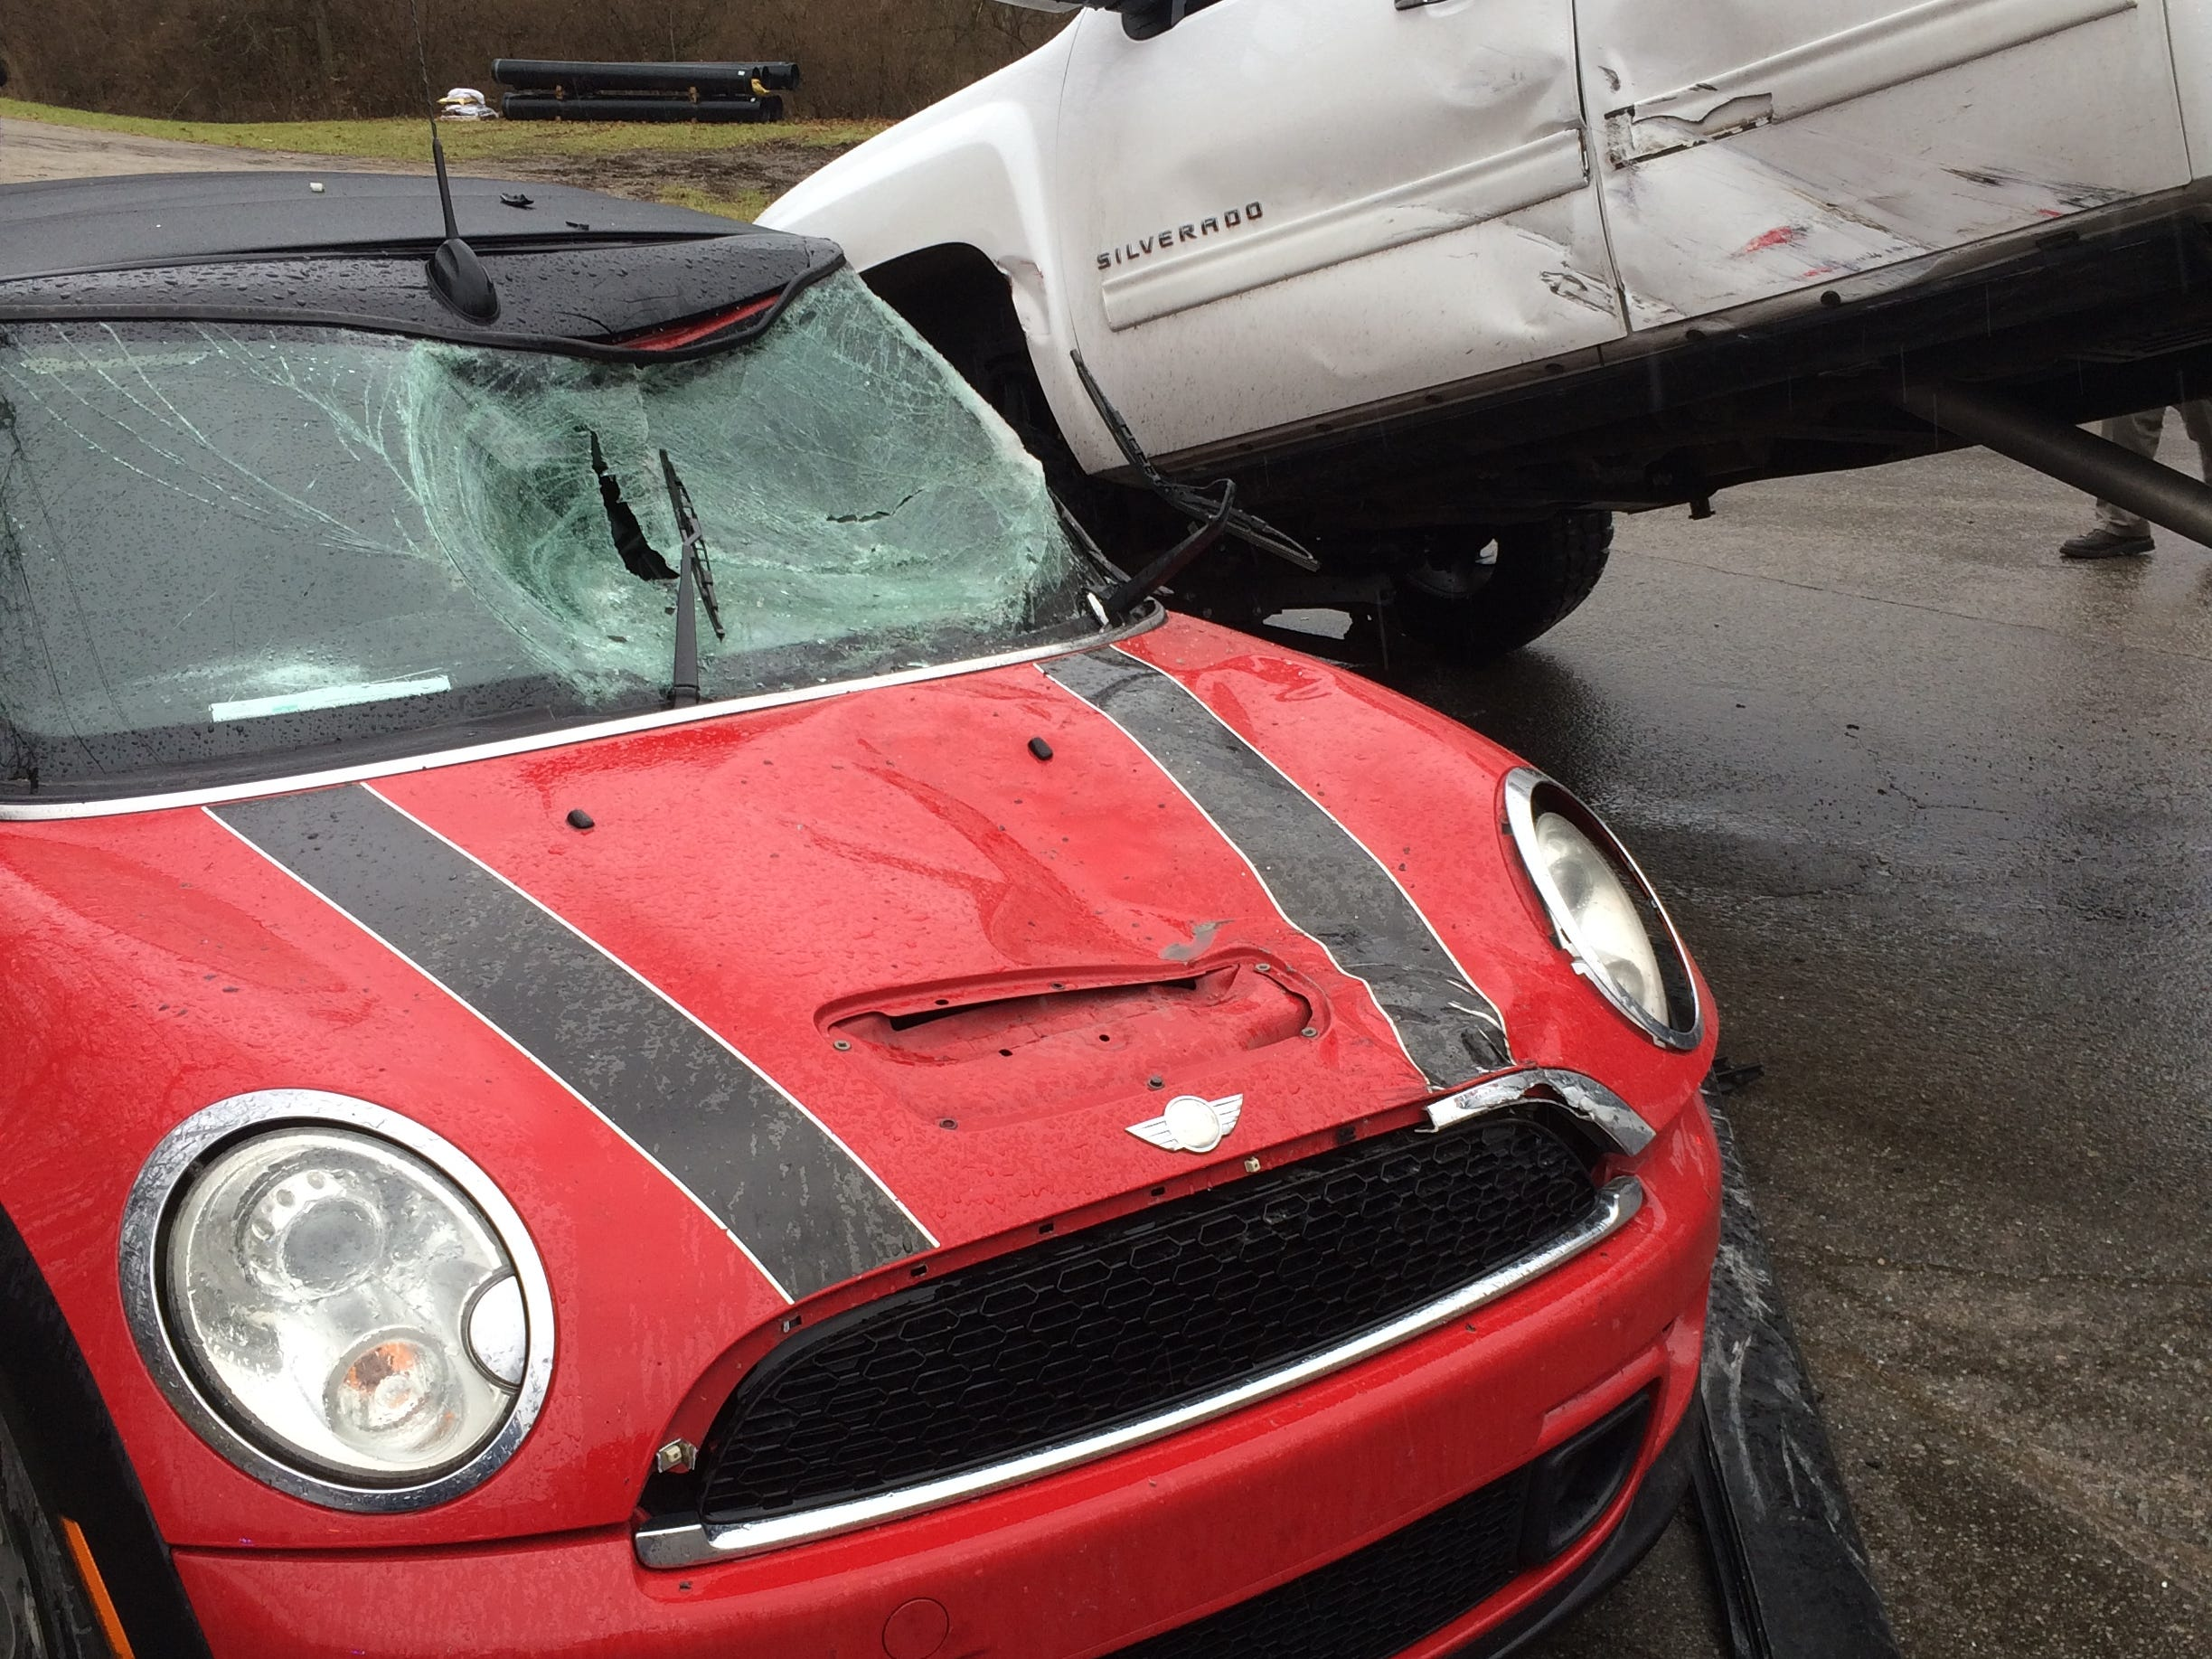 The removal of a Chevrolet Silverado pickup from atop a Mini Cooper reveals the damage to the Mini Cooper after a Thursday accident.